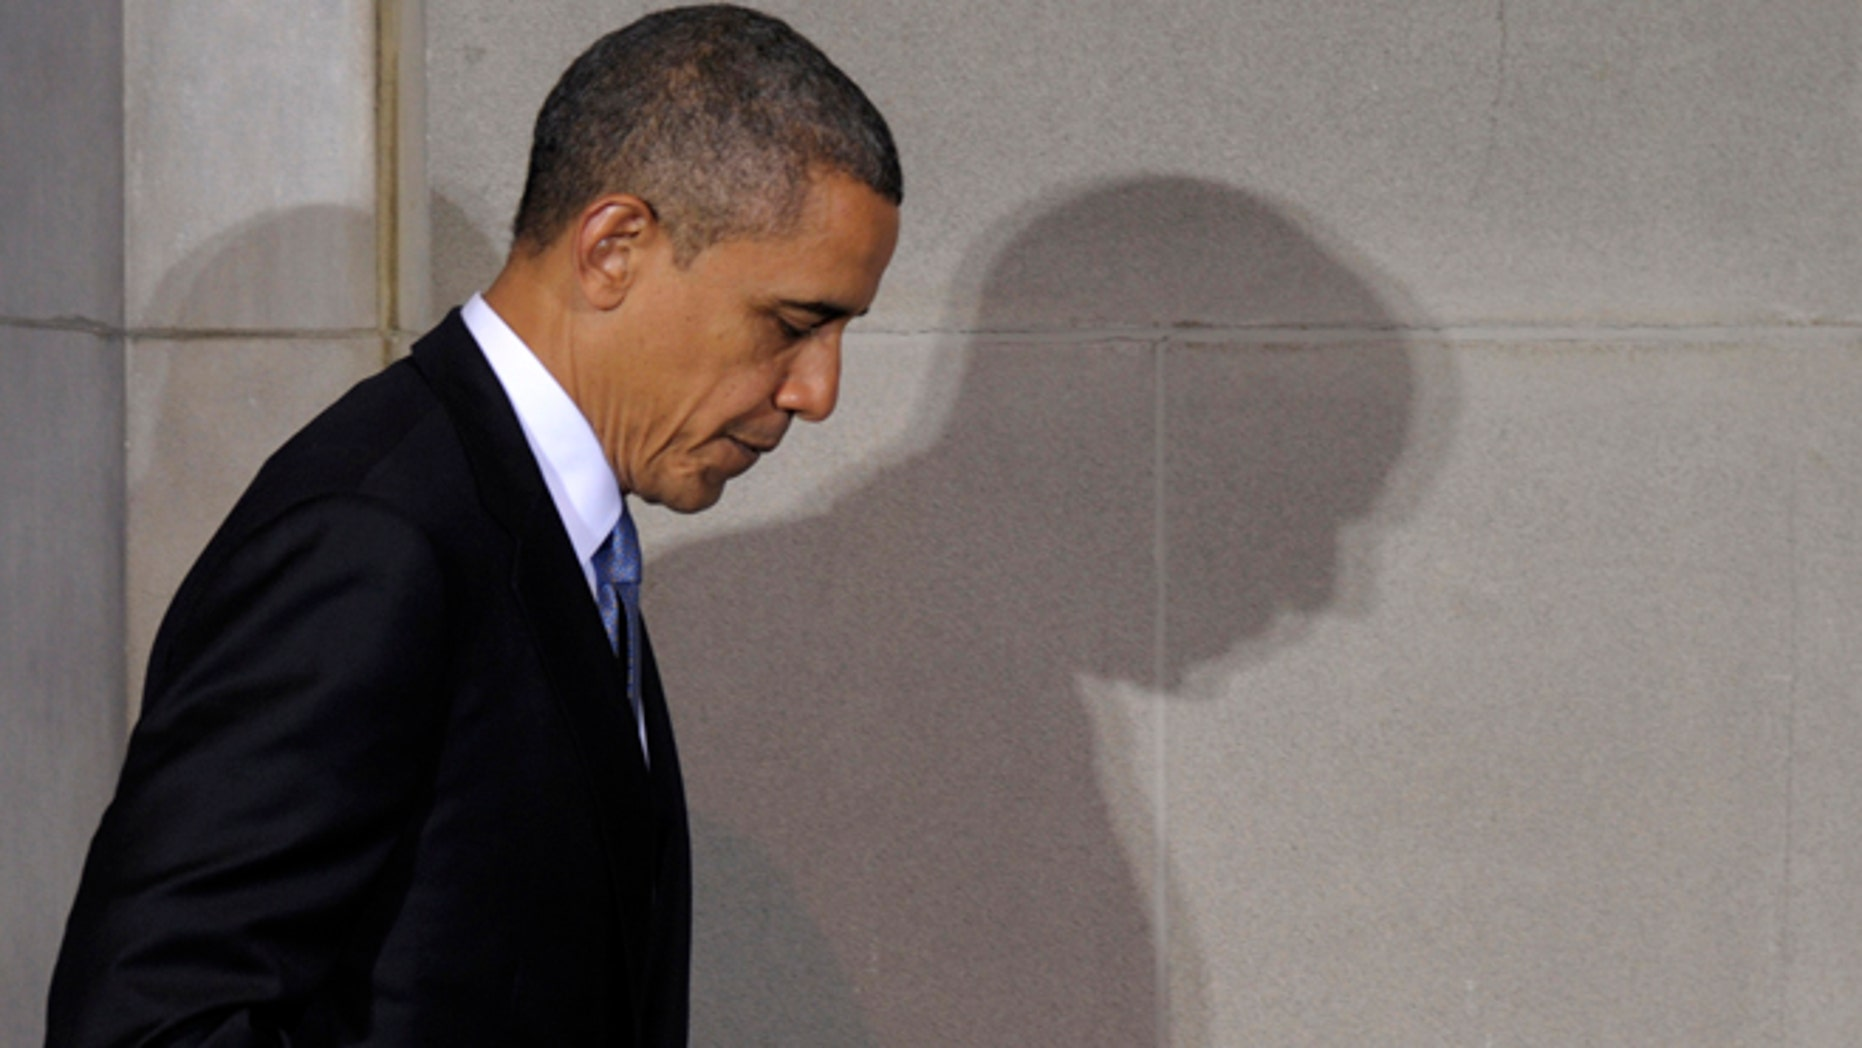 """President Barack Obama casts a shadow as he walks off of the stage after speaking at the 2012 Tribal Nations Conference, Wednesday, Dec. 5, 2012, at the Interior Department in Washington. Native American tribal leaders are concerned that steady progress on their issues might be undermined if President Barack Obama and Congress make deep spending cuts to avoid the """"fiscal cliff.""""  More than 500 tribal leaders were taking those concerns to the fourth White House Tribal Nations summit, which convenes Wednesday. (AP Photo/Susan Walsh)"""